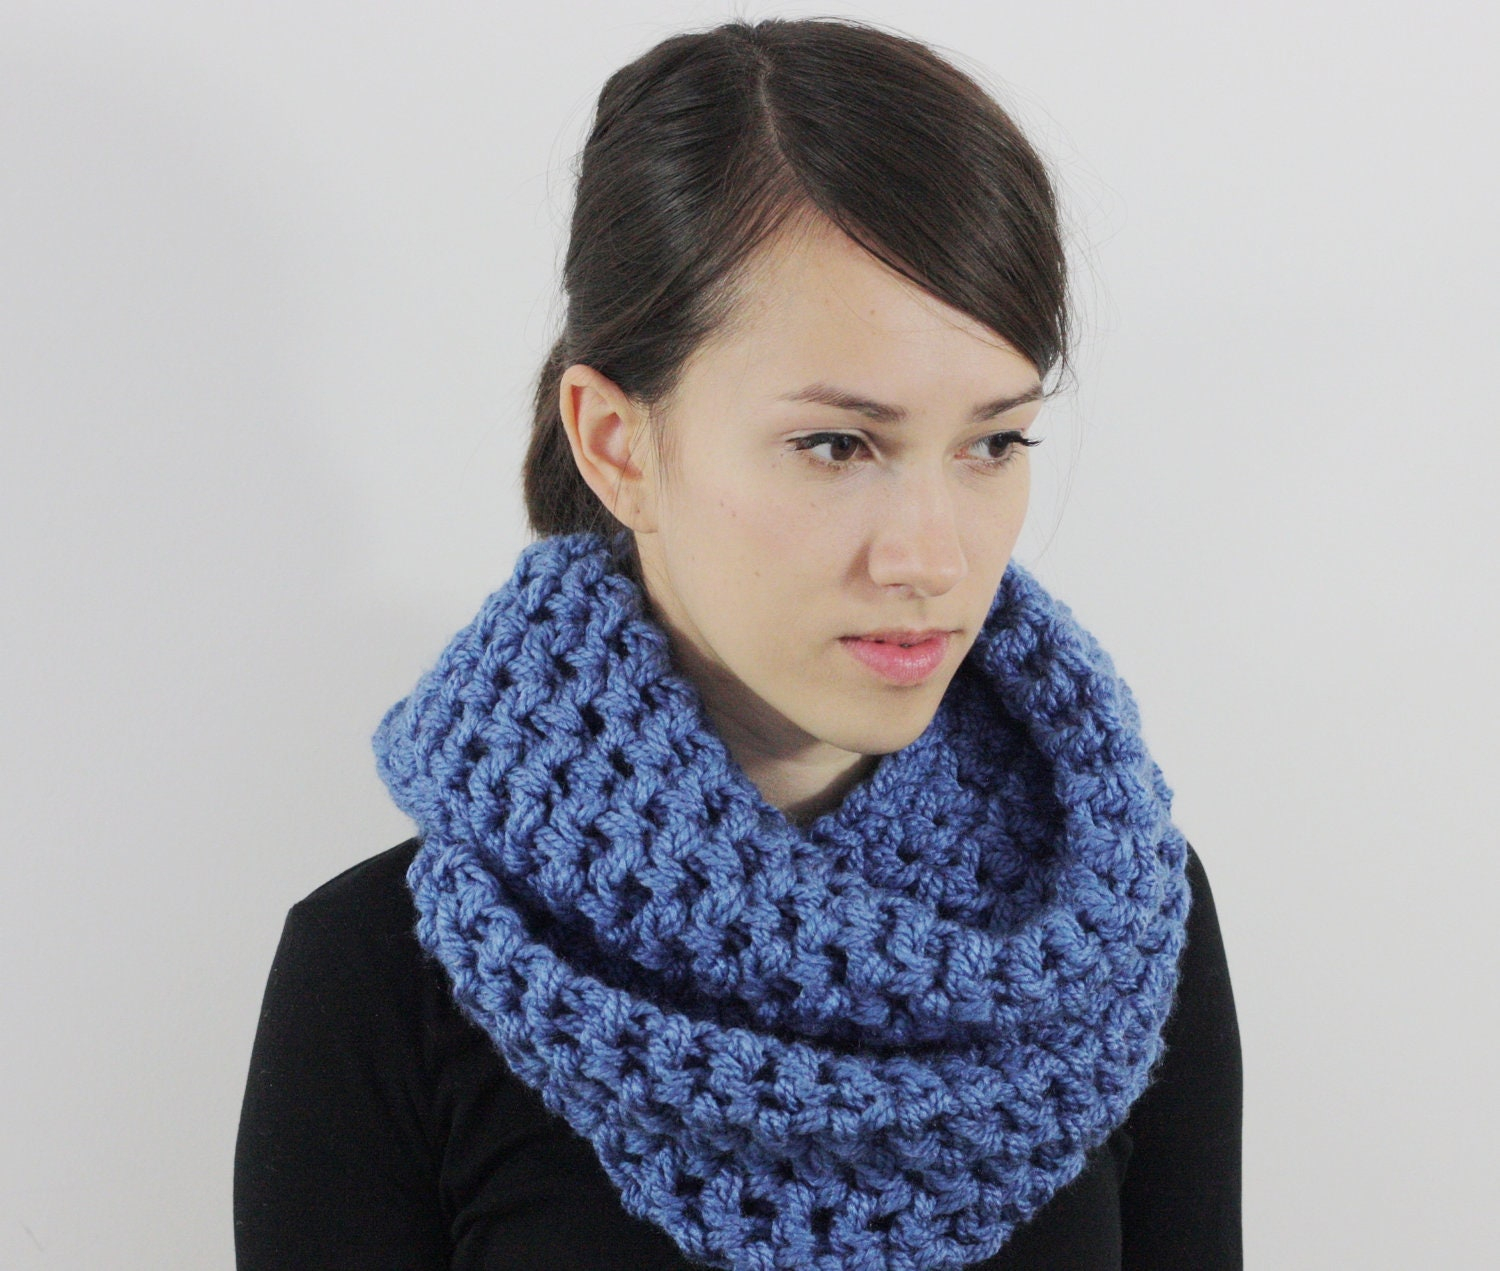 Cowl Neck Scarf for Mens Denim Blue Autumn Cowl Neck Scarves Men Cowl Neck Scarves Men